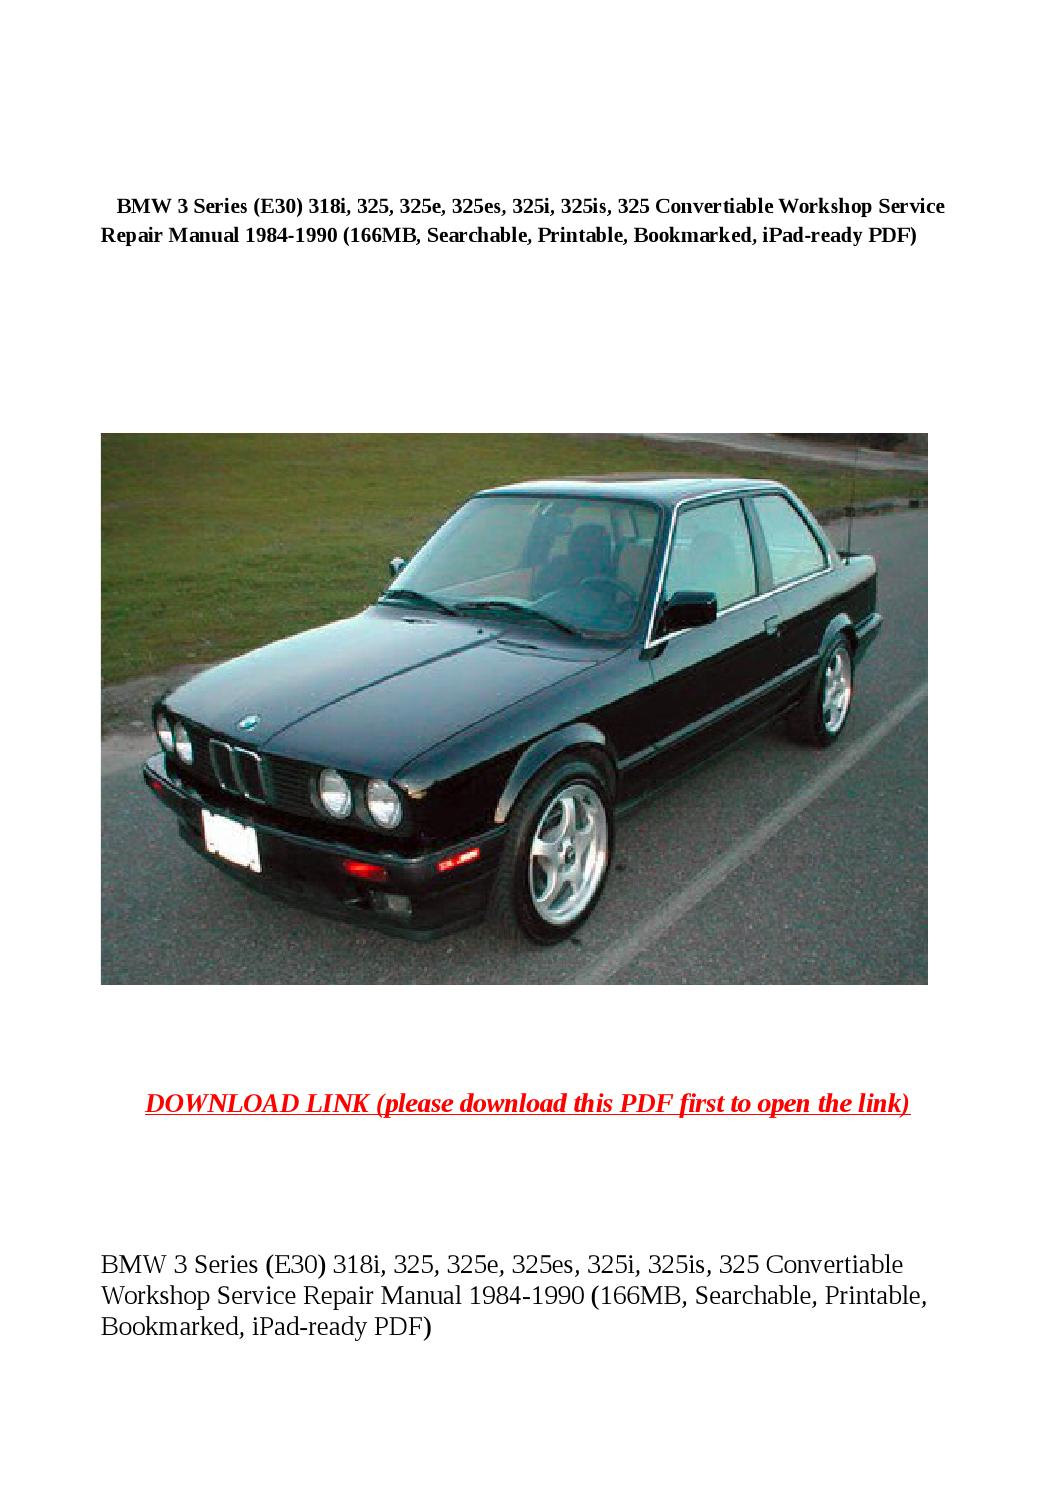 ... Array - bmw 3 series e30 318i 325 325e 325es 325i 325is 325 rh ...